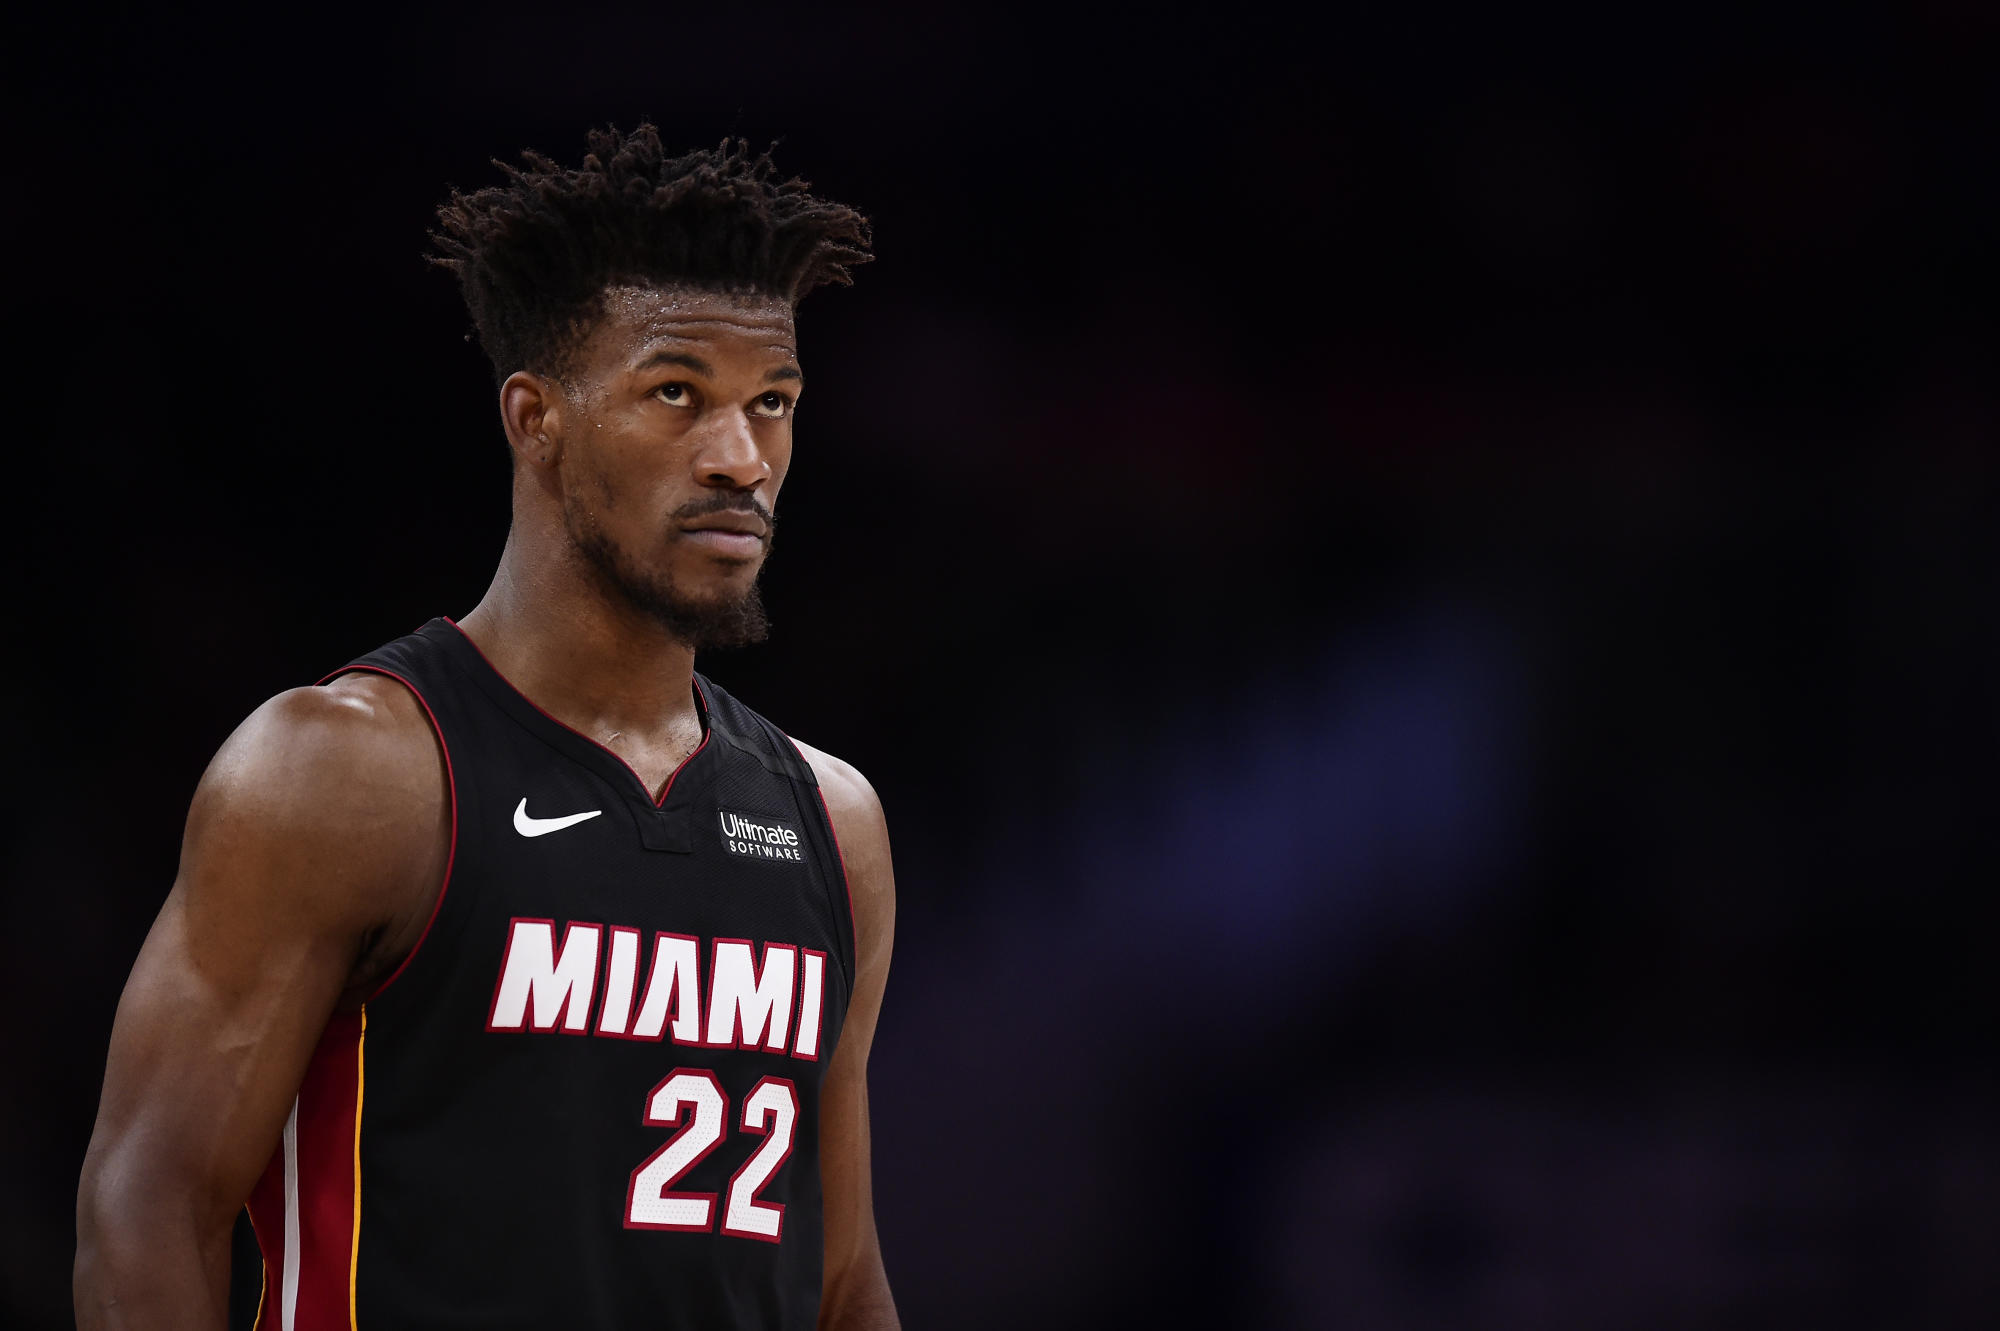 Instead of a social justice message, Jimmy Butler wants his jersey to be blank